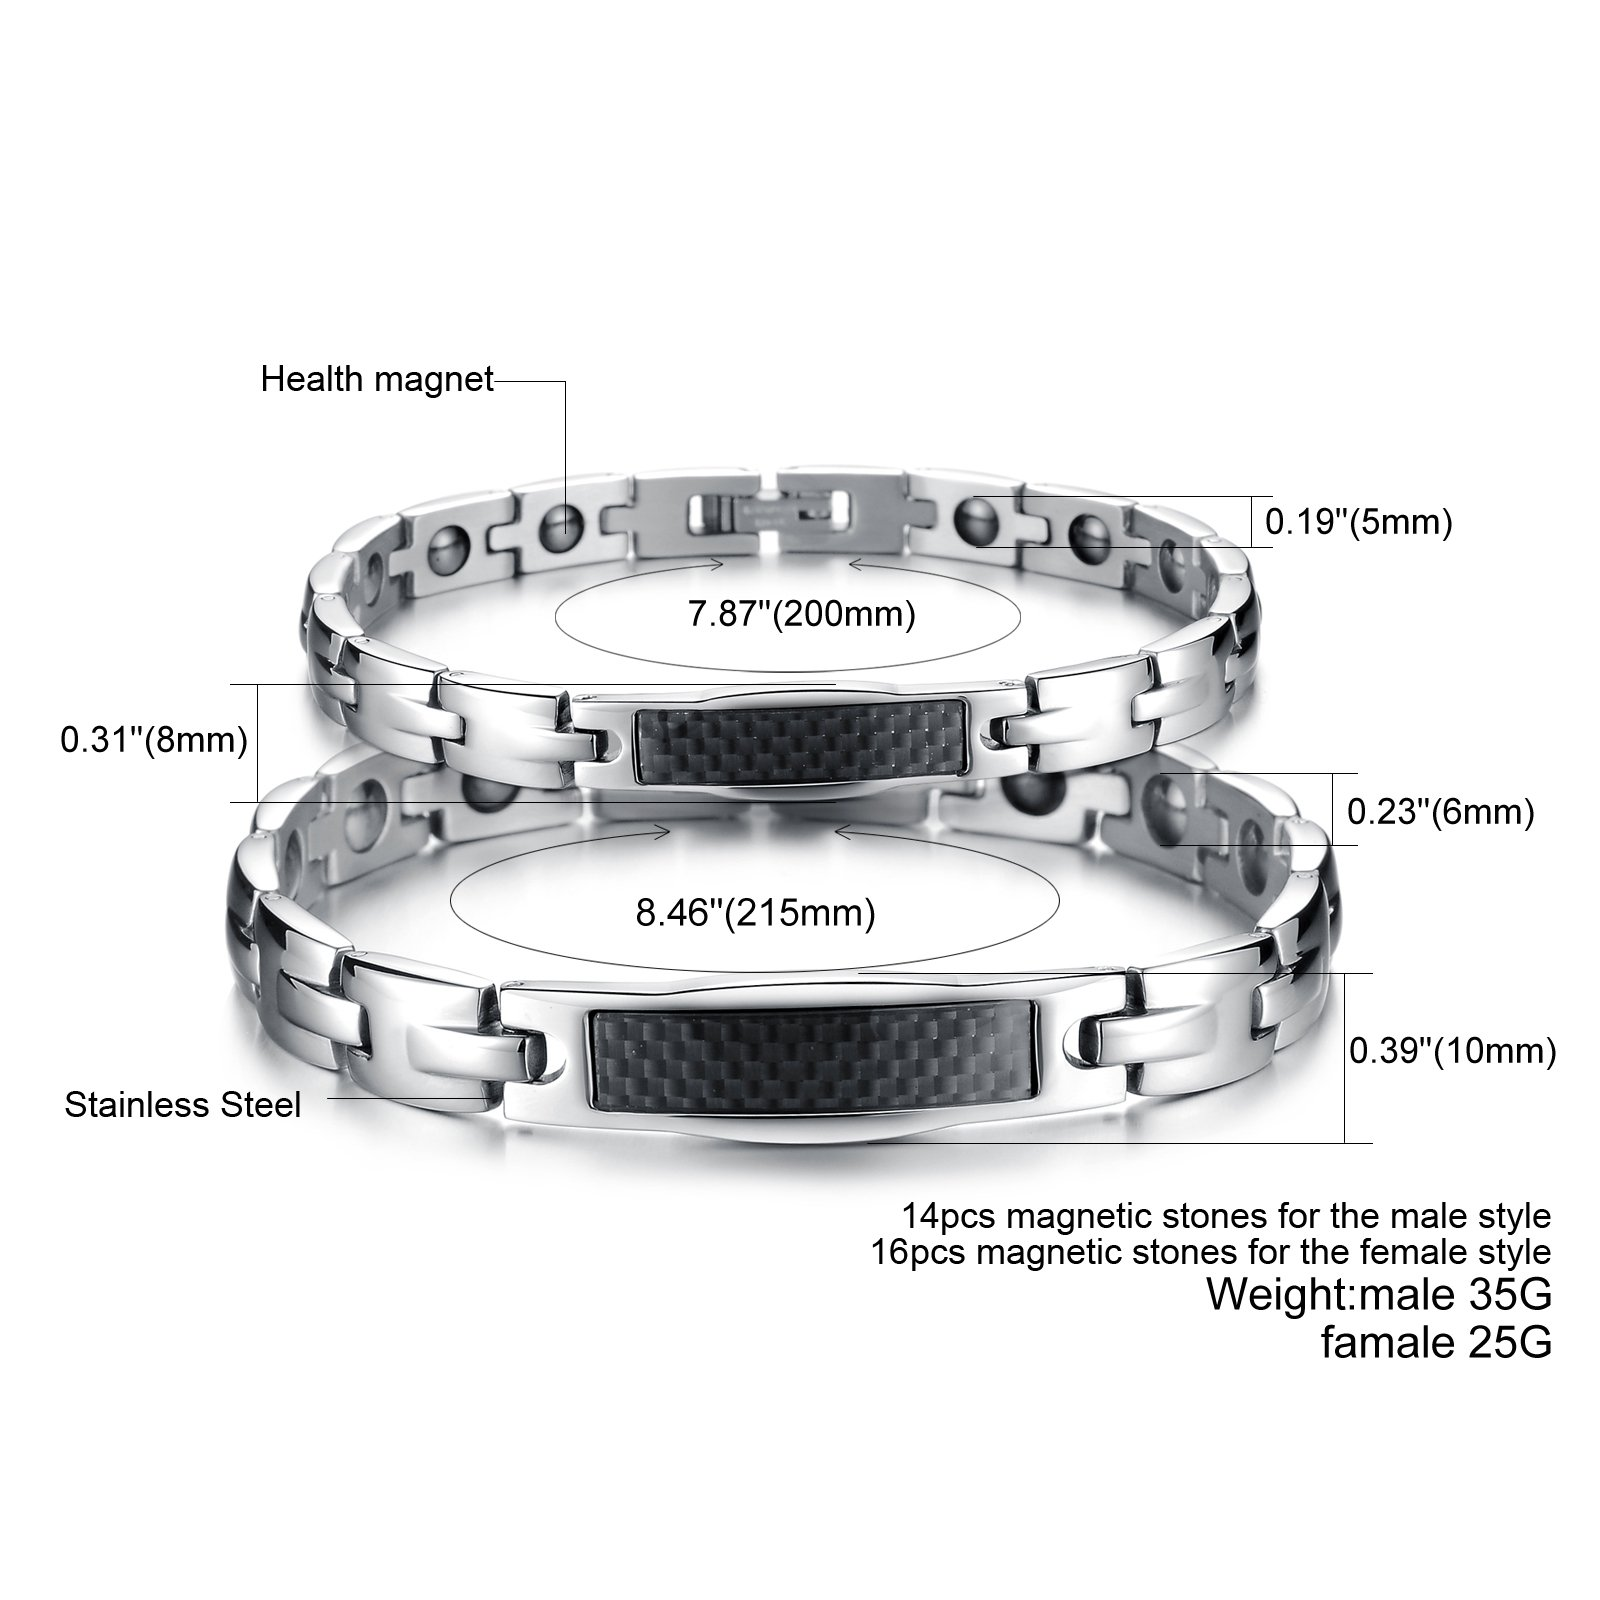 Fate Love His & Her Matching Set Carbon Fiber Magnetic Energy Bracelets,Health Care Link Chain for Couple by Fate Love (Image #2)